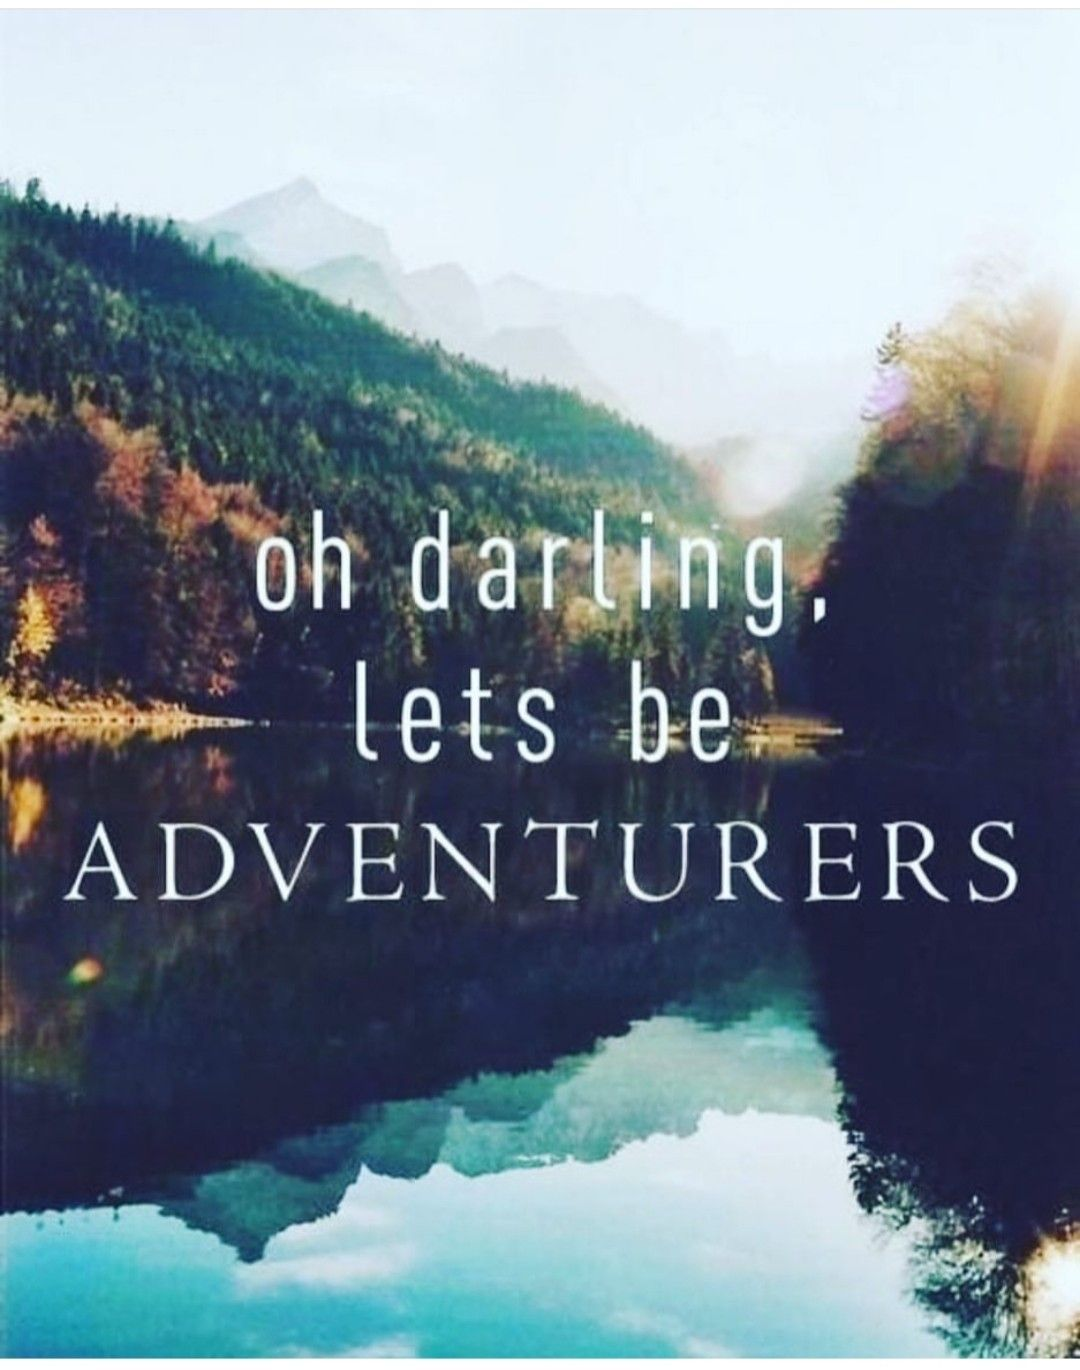 Let's travel the world! | Adventure is out there ...